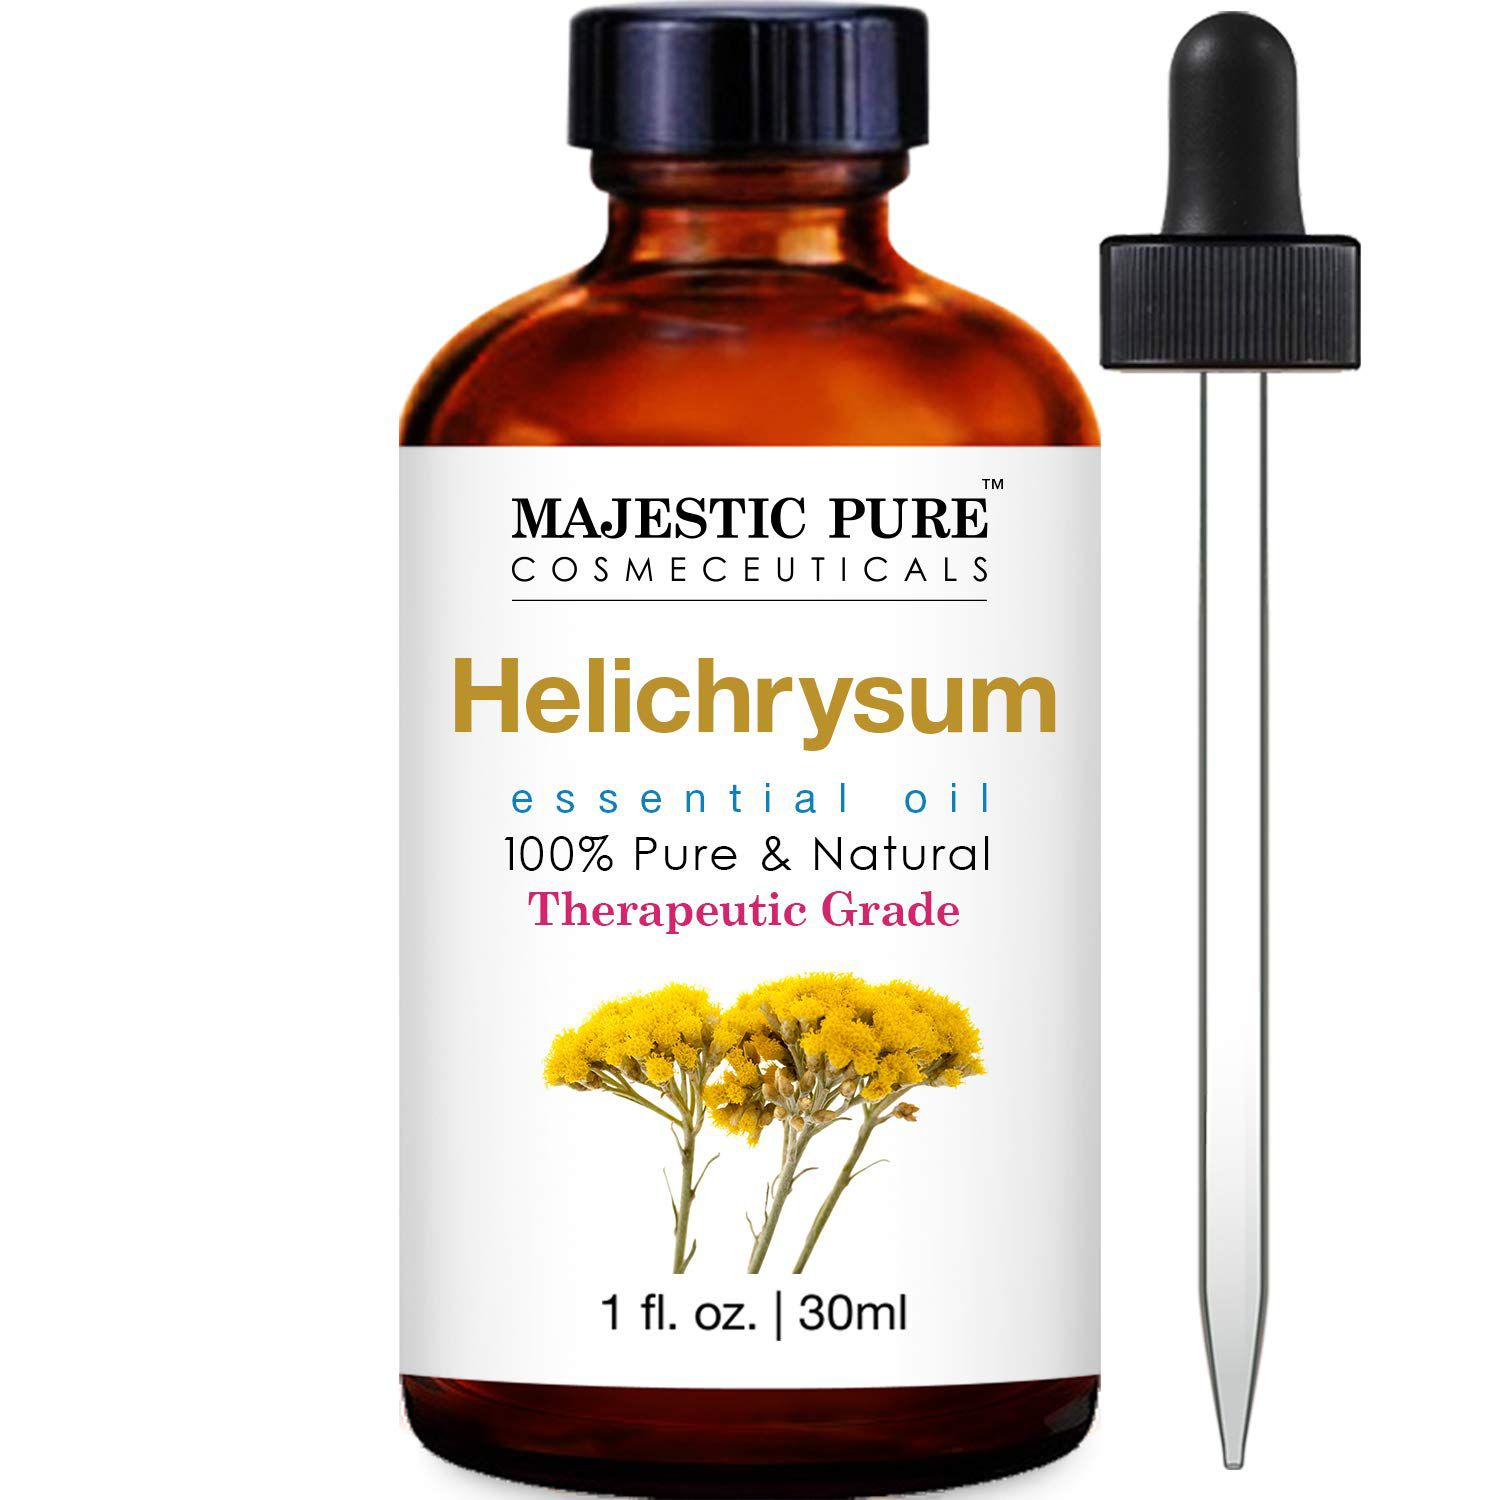 Majestic Pure Cosmeceuticals Helichrysum Oil